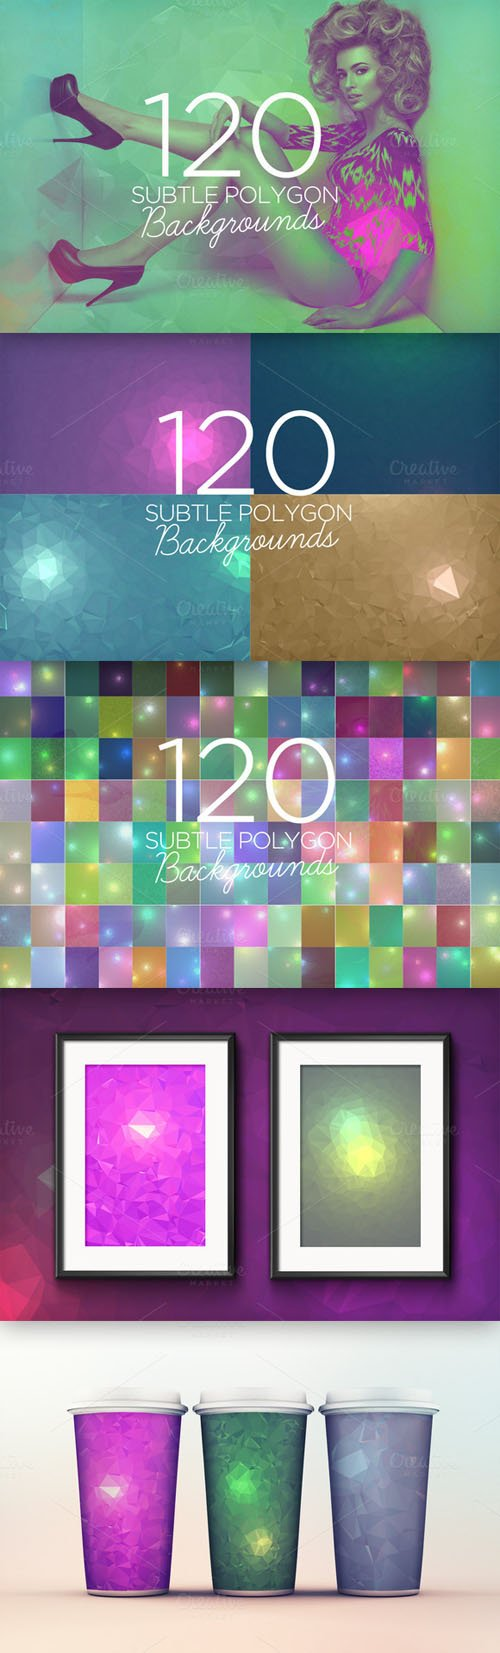 120 Subtle Polygon Backgrounds - Creativemarket 65281